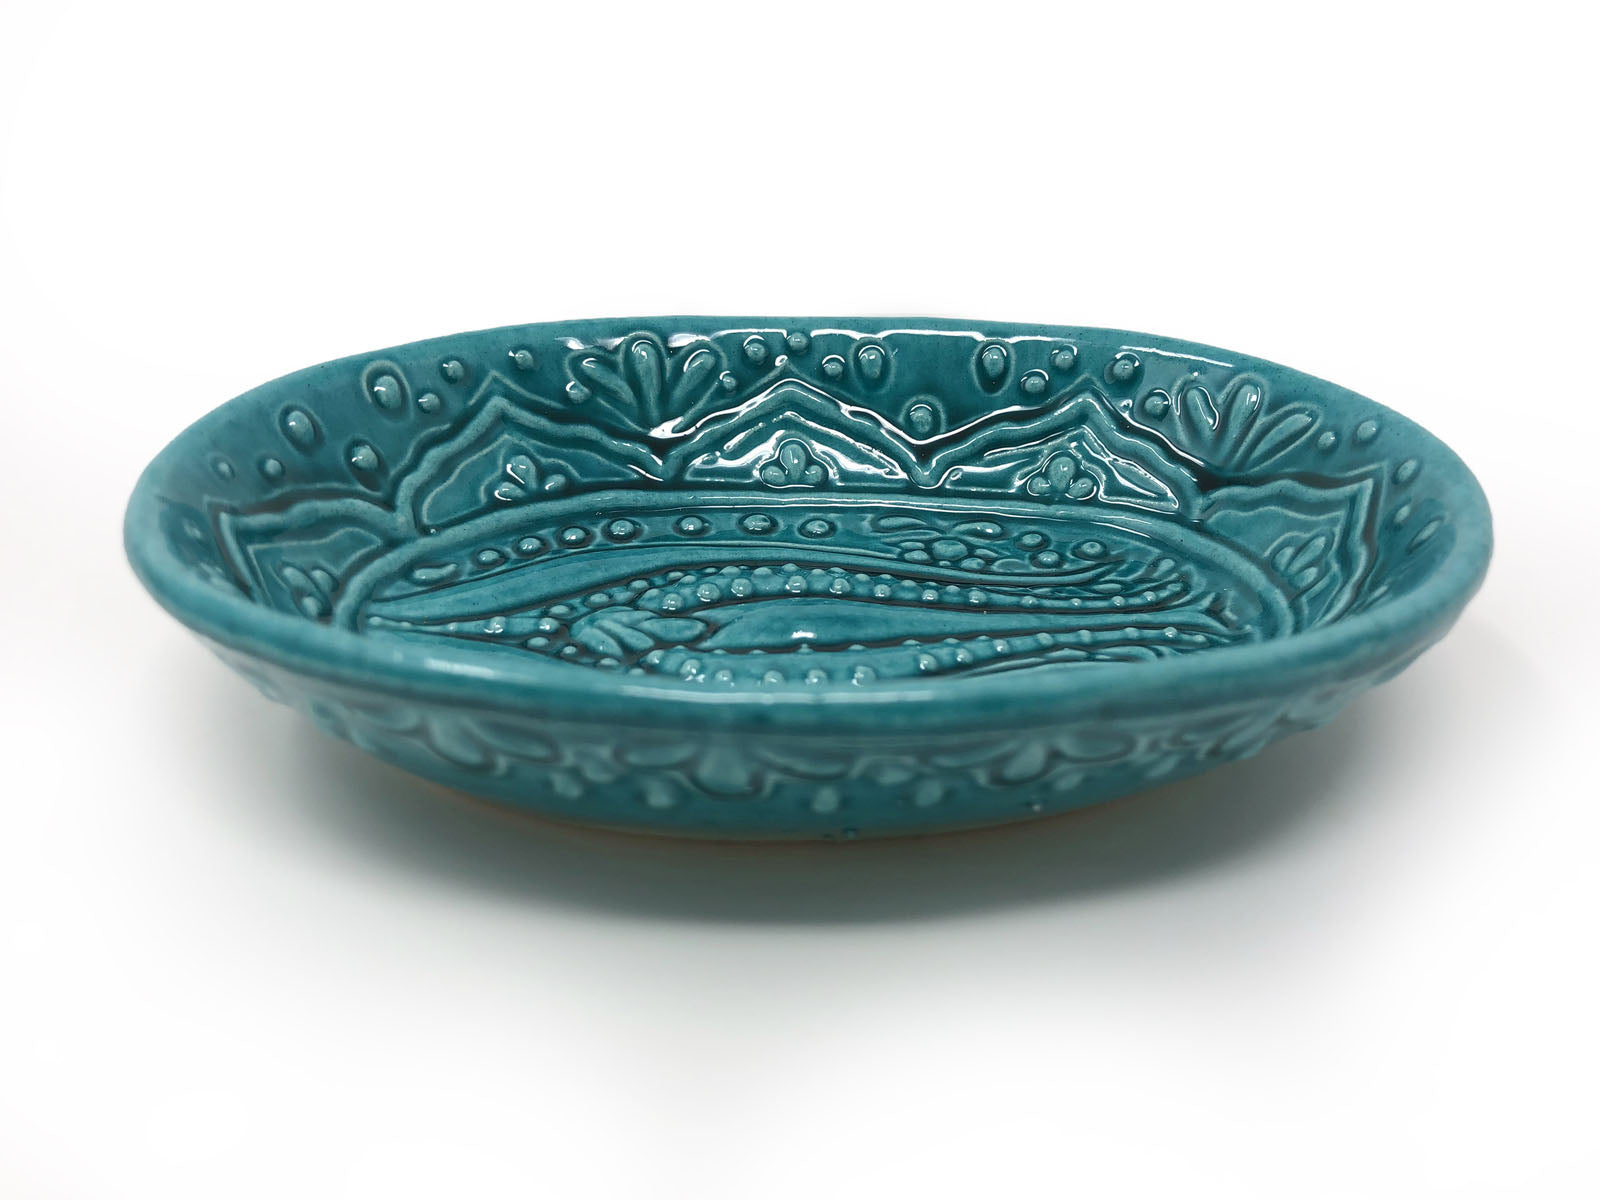 Ozel Handmade Ceramic Collection 14cm Oval Dish Turquoise